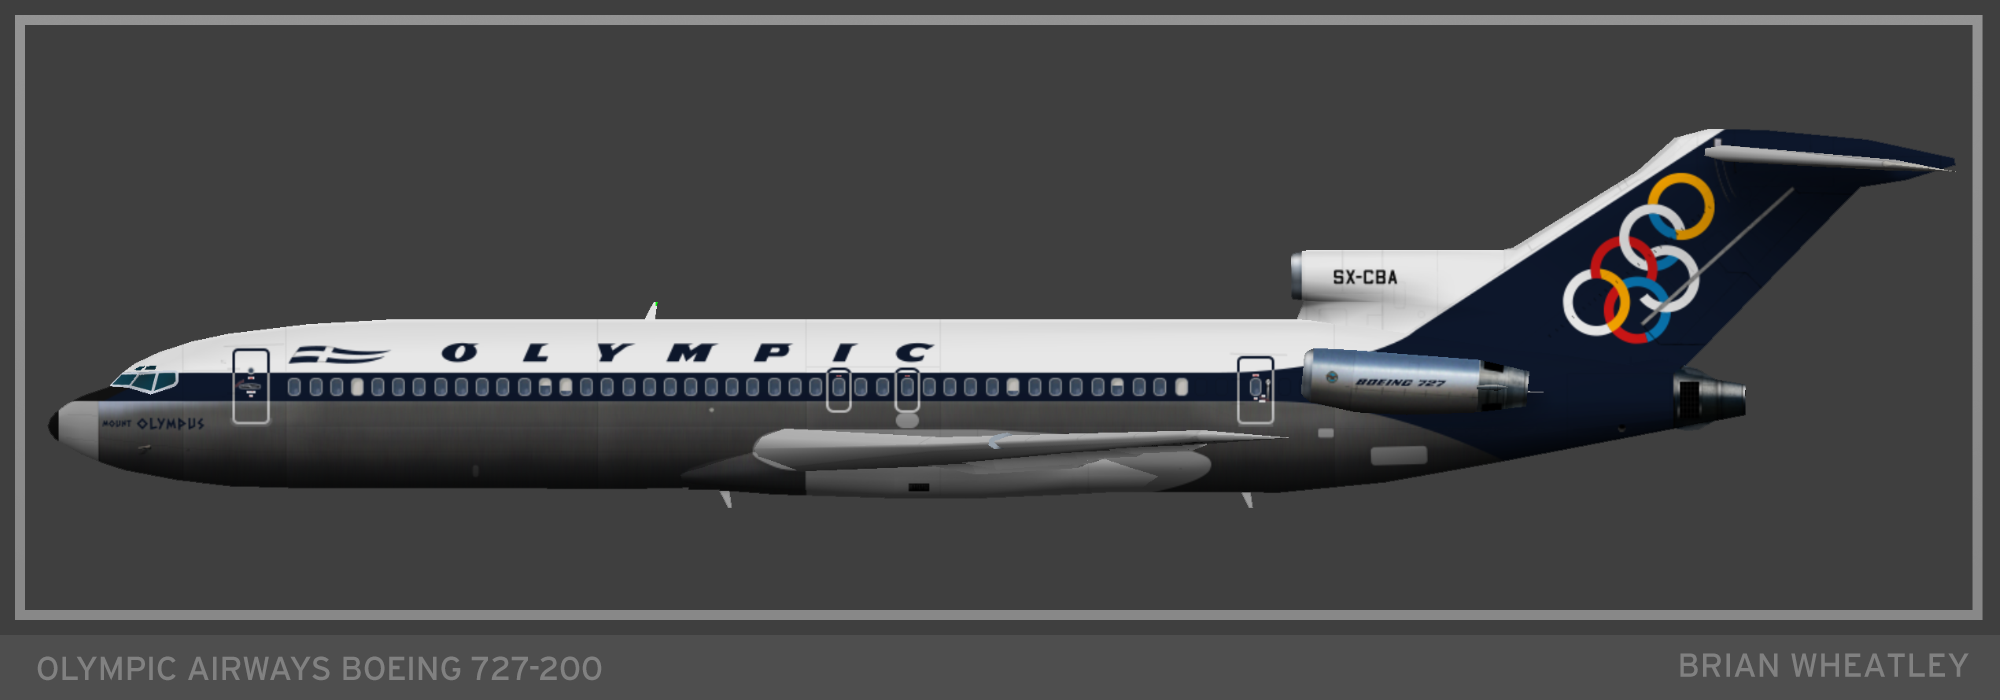 brw_b72s_olympicairways